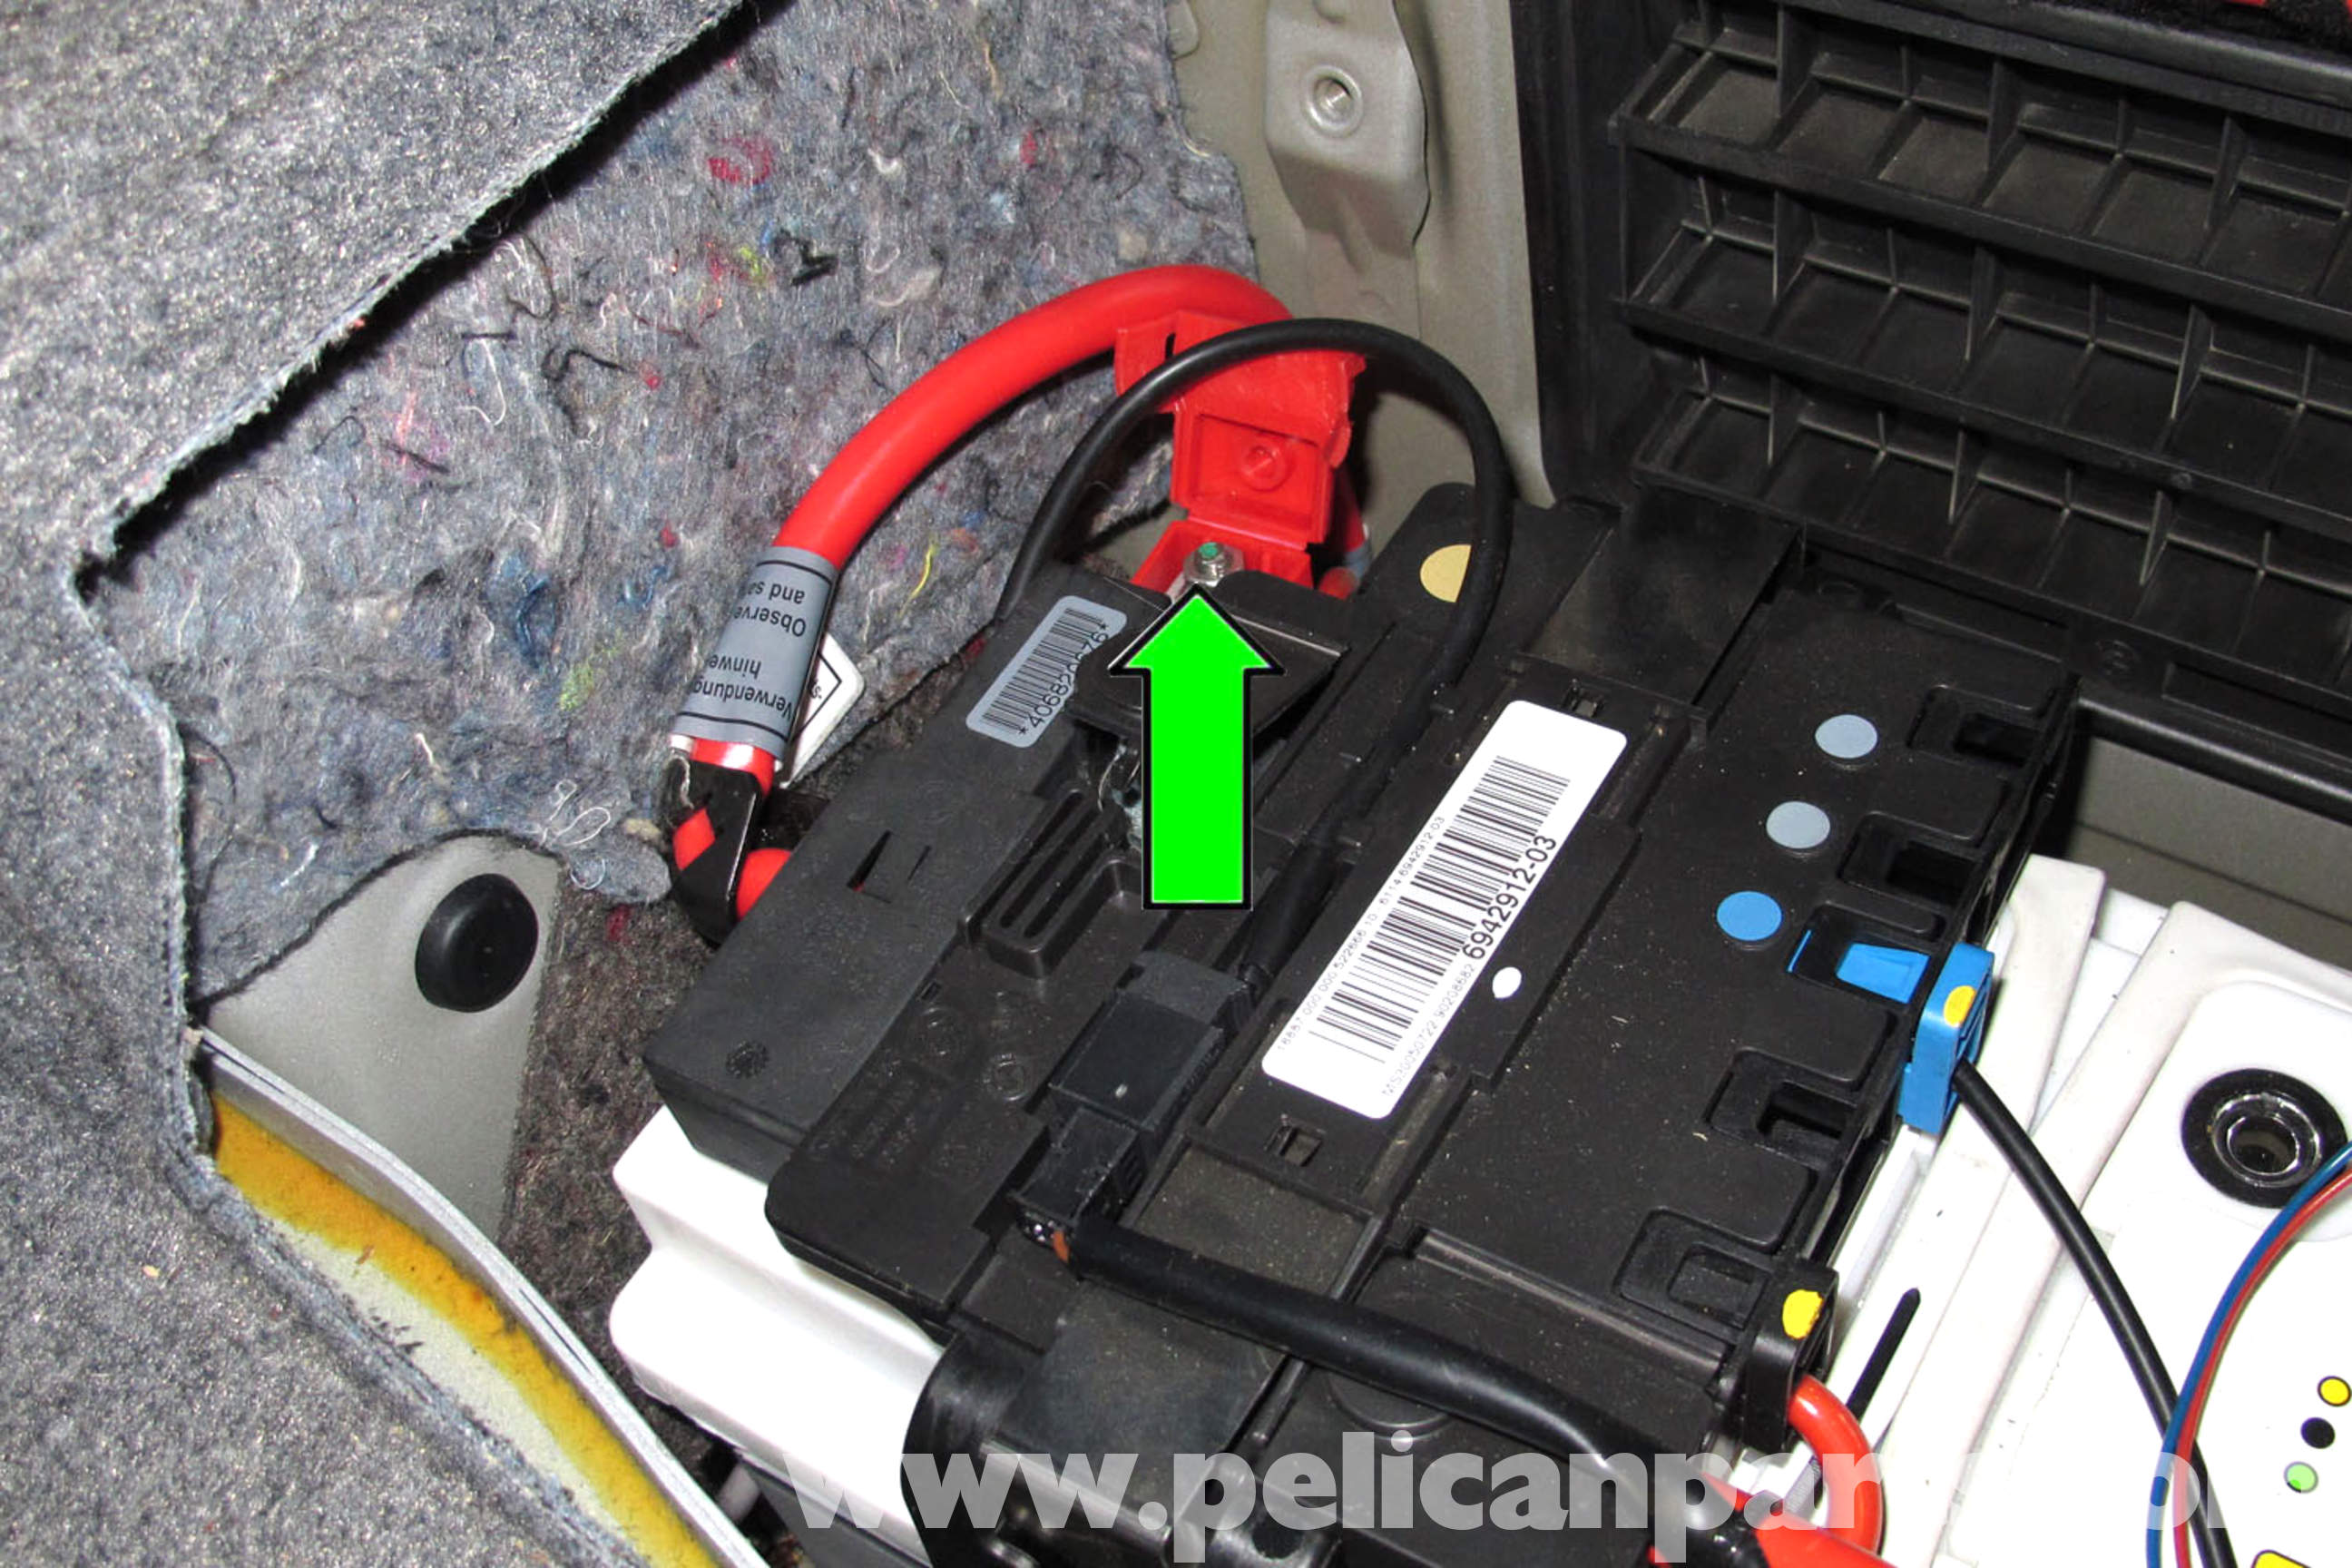 07 Bmw 328i Fuse Box Location Wiring Library Harness 2007 325i Diagram Free Engine Image 2006